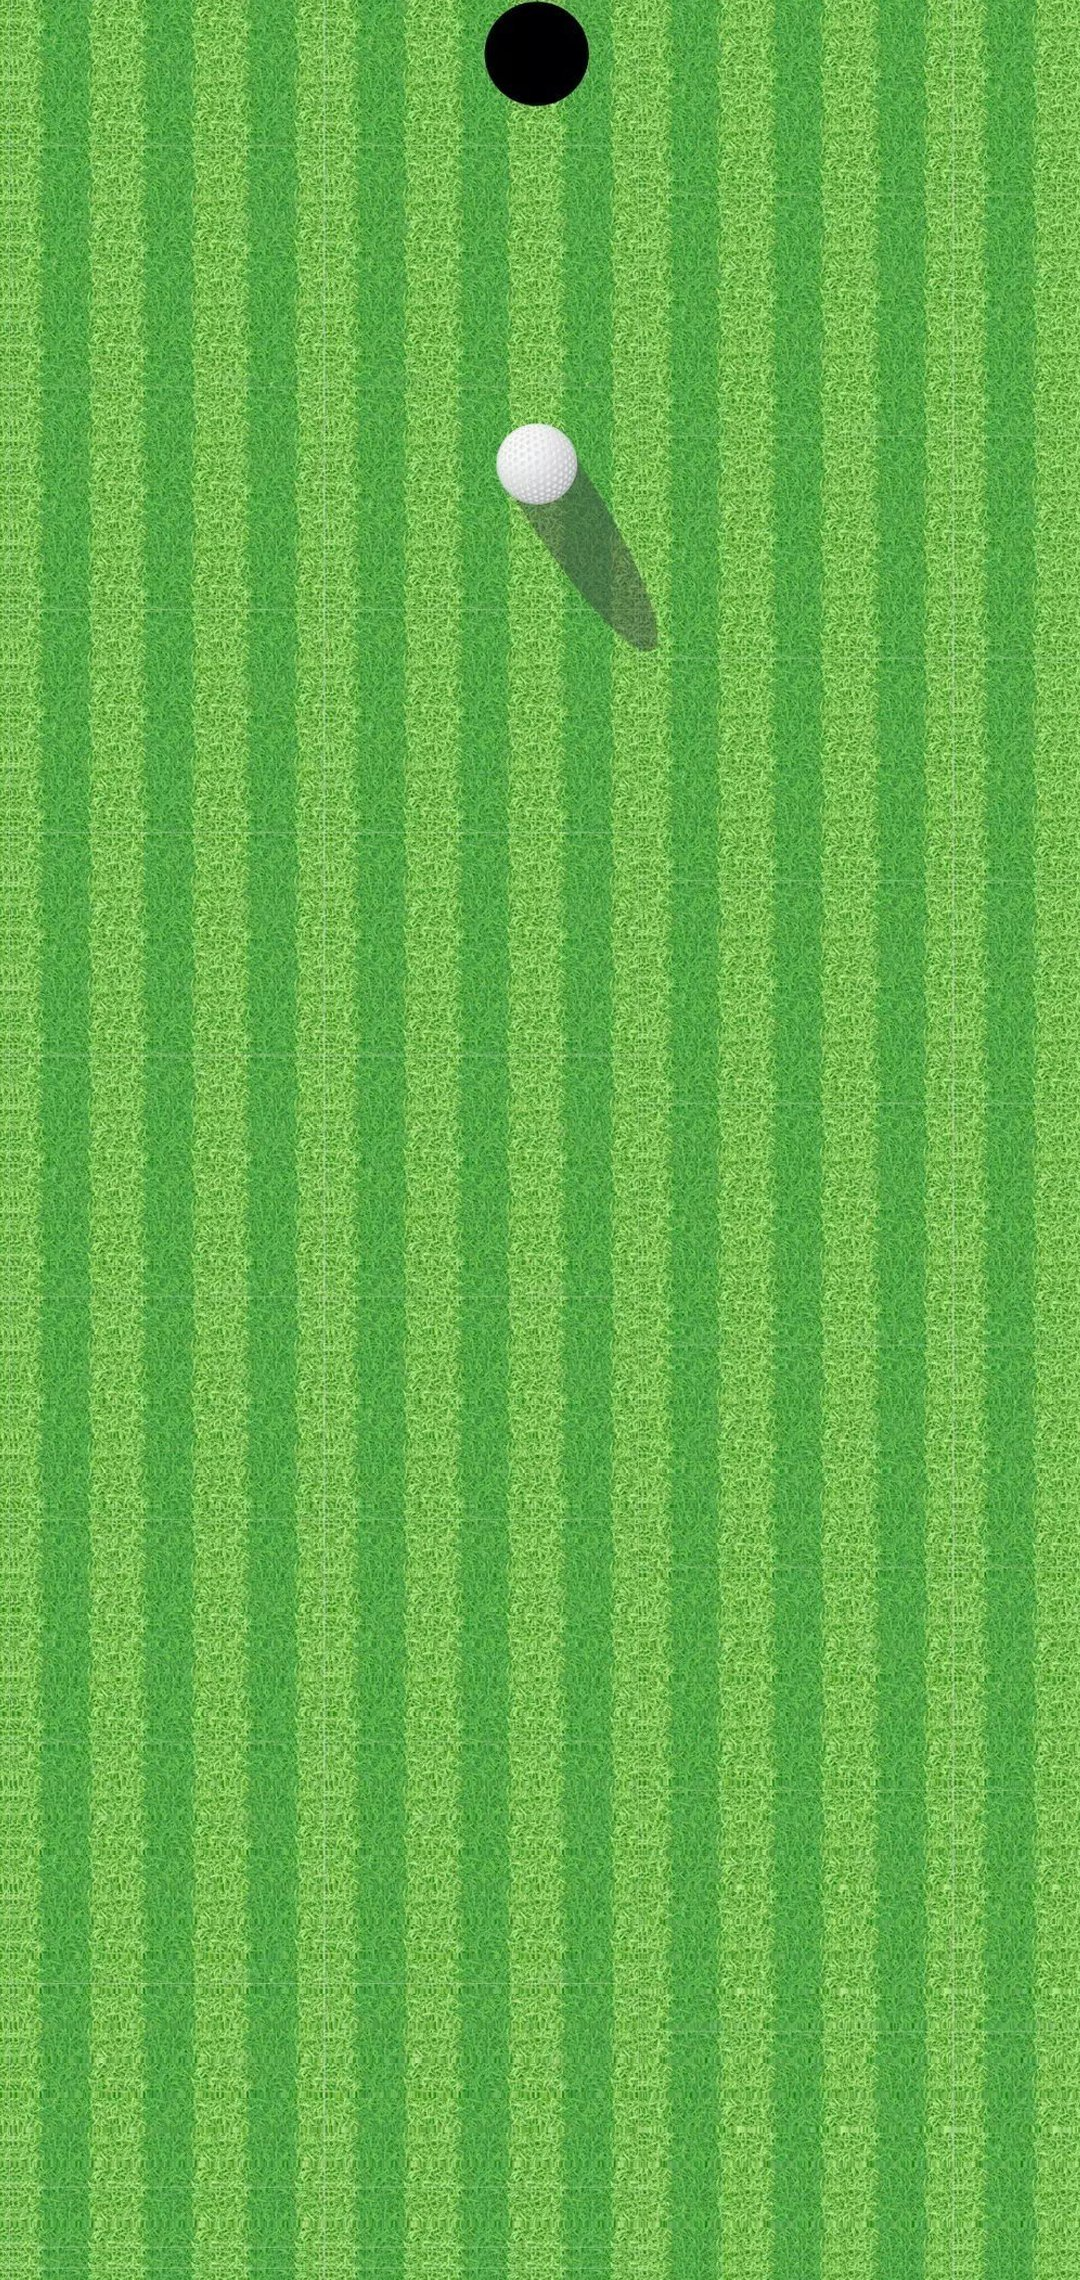 golf pitch camera hole wallpaper